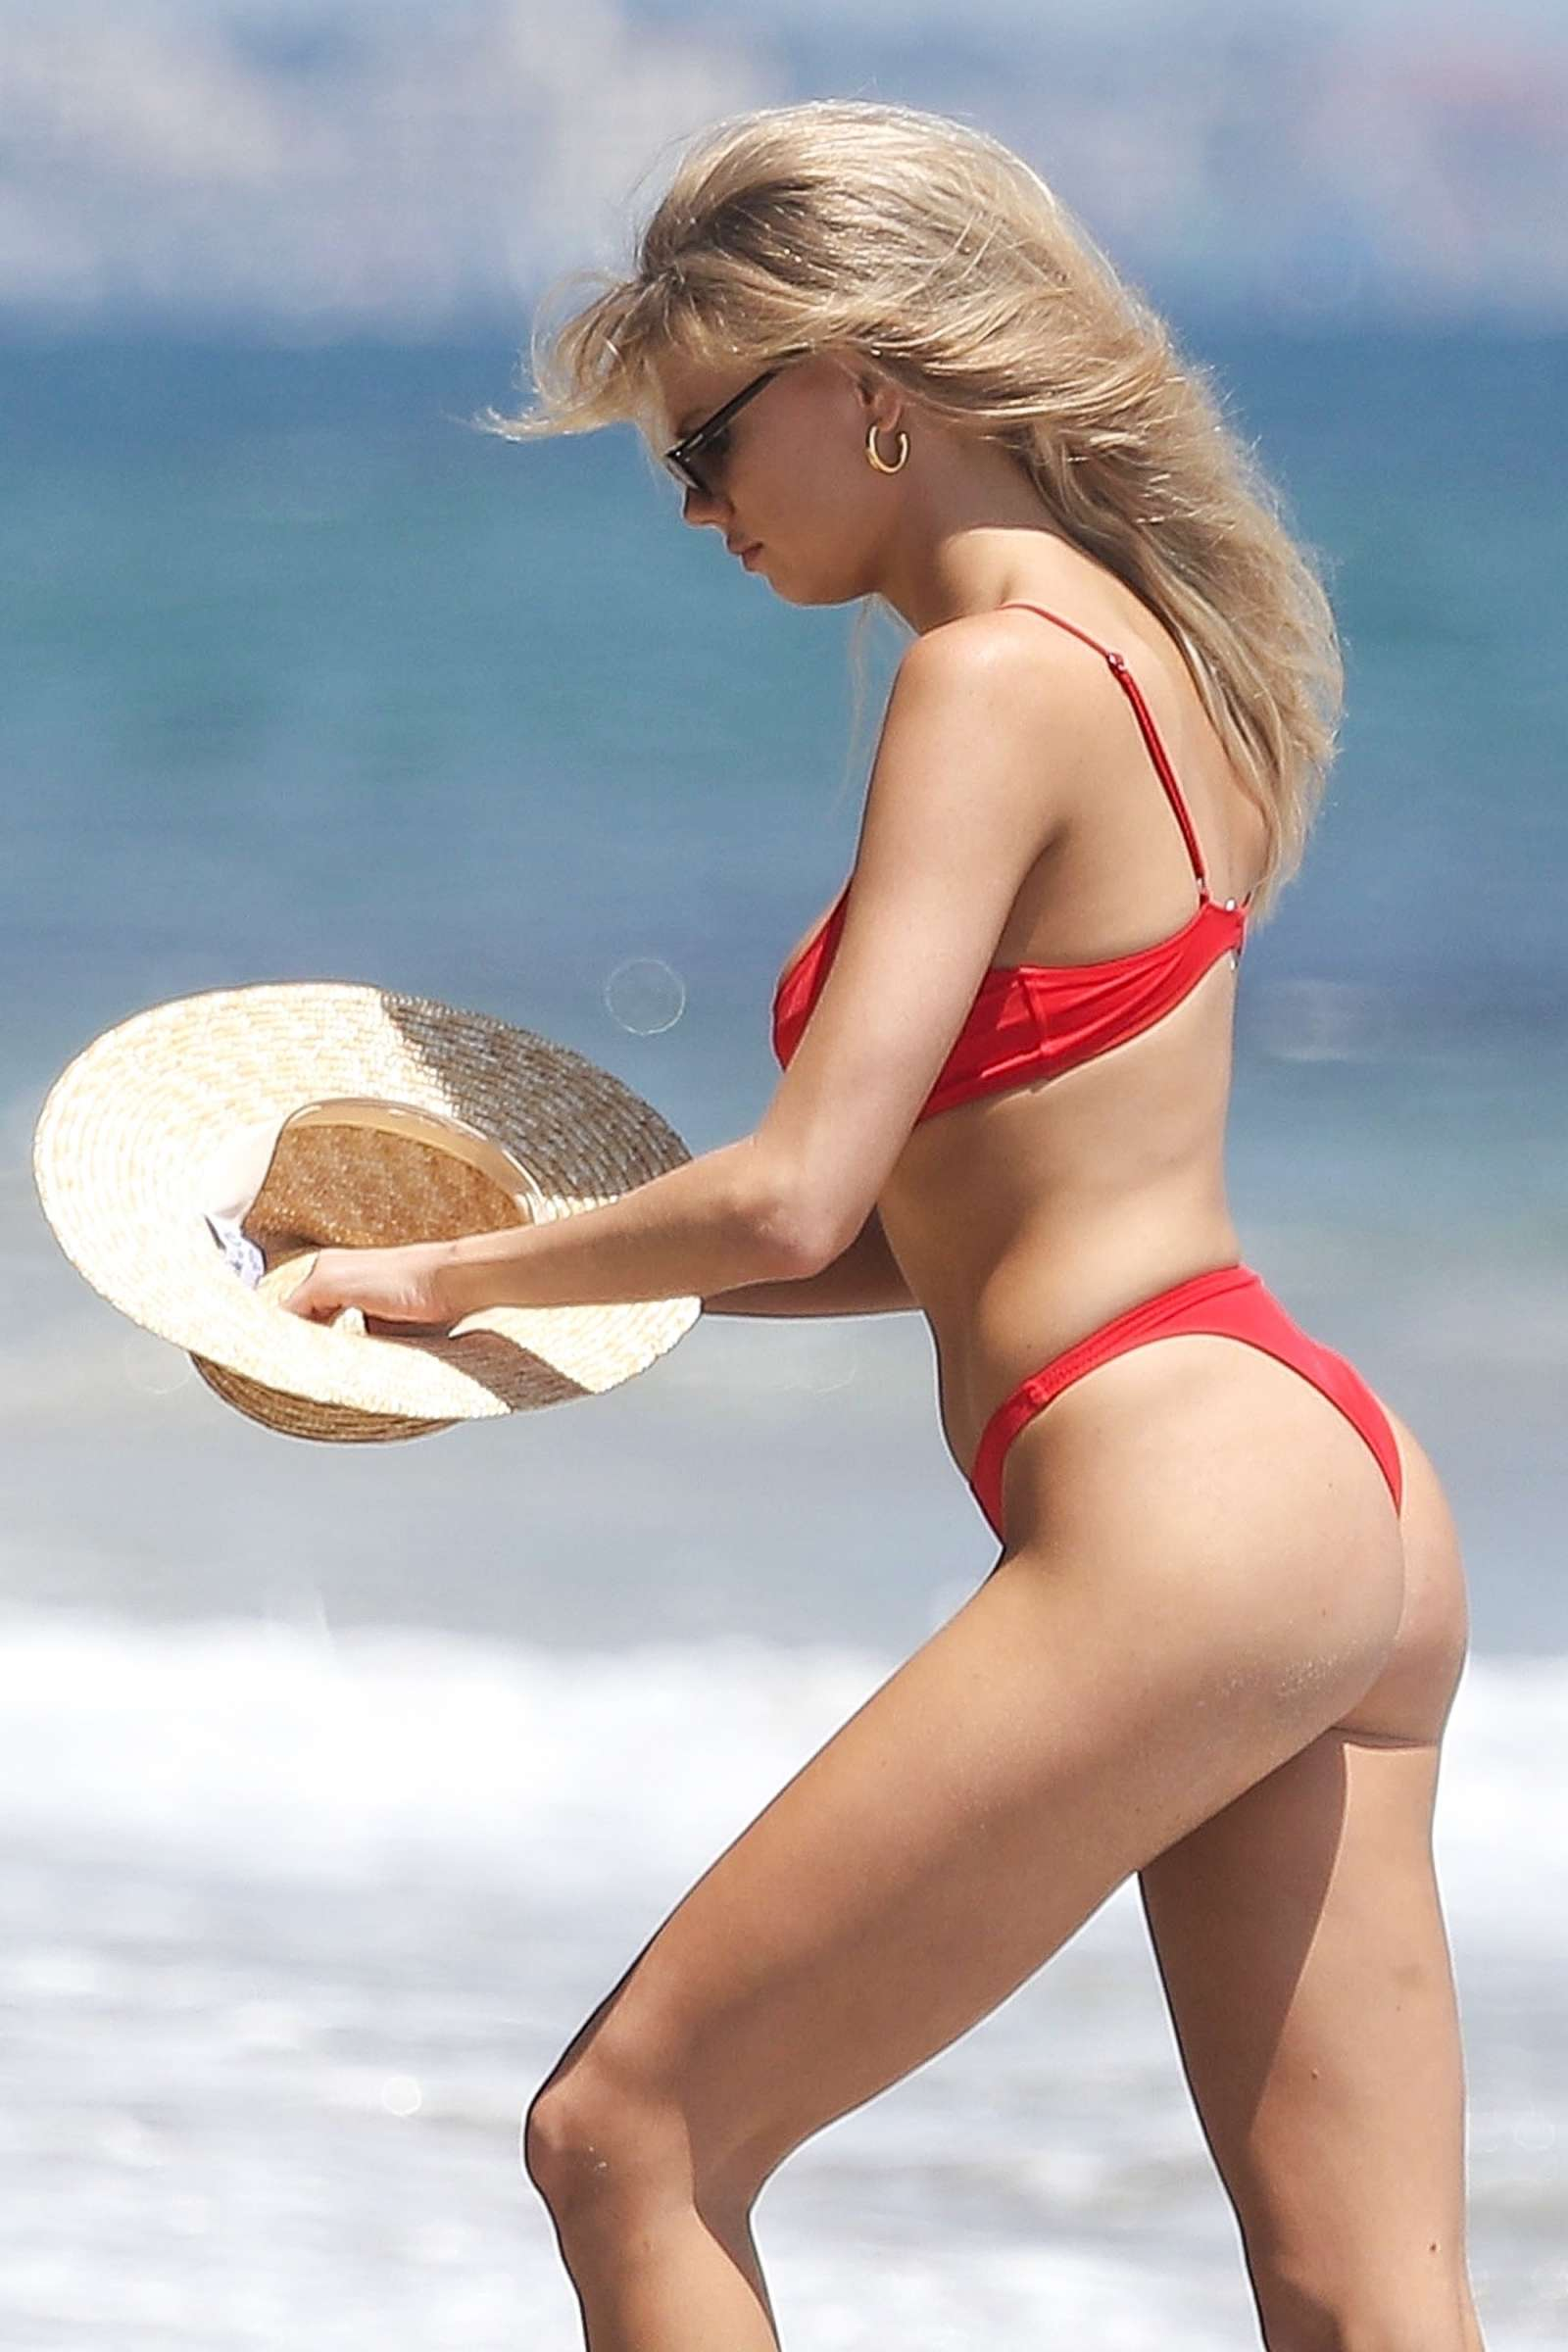 charlotte mckinney seen wearing a red bikini at the